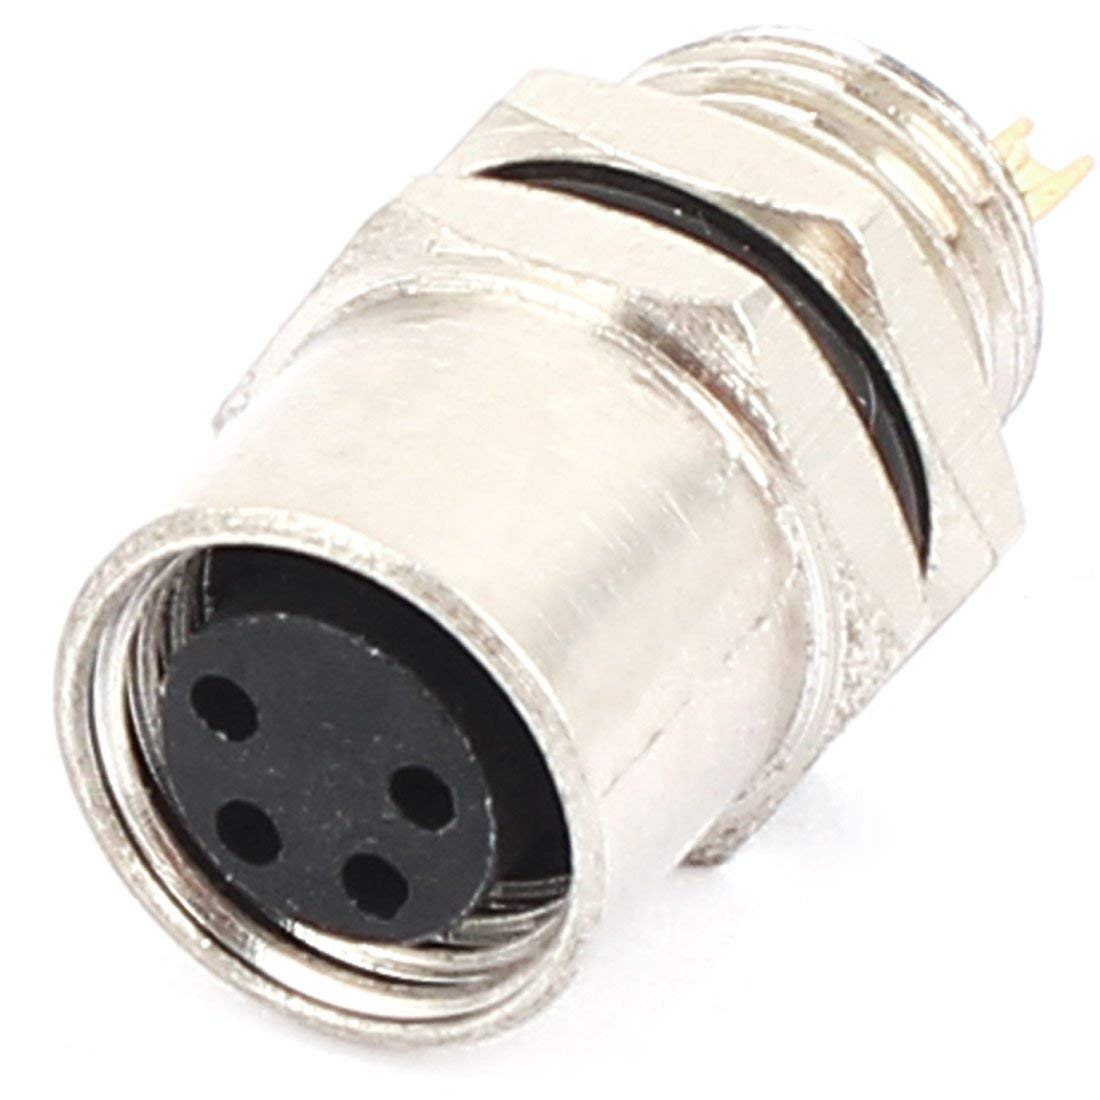 Aexit Waterproof Metal Audio & Video Accessories Aviation Connector Flange Female Socket 8mm Connectors & Adapters 4 Pin